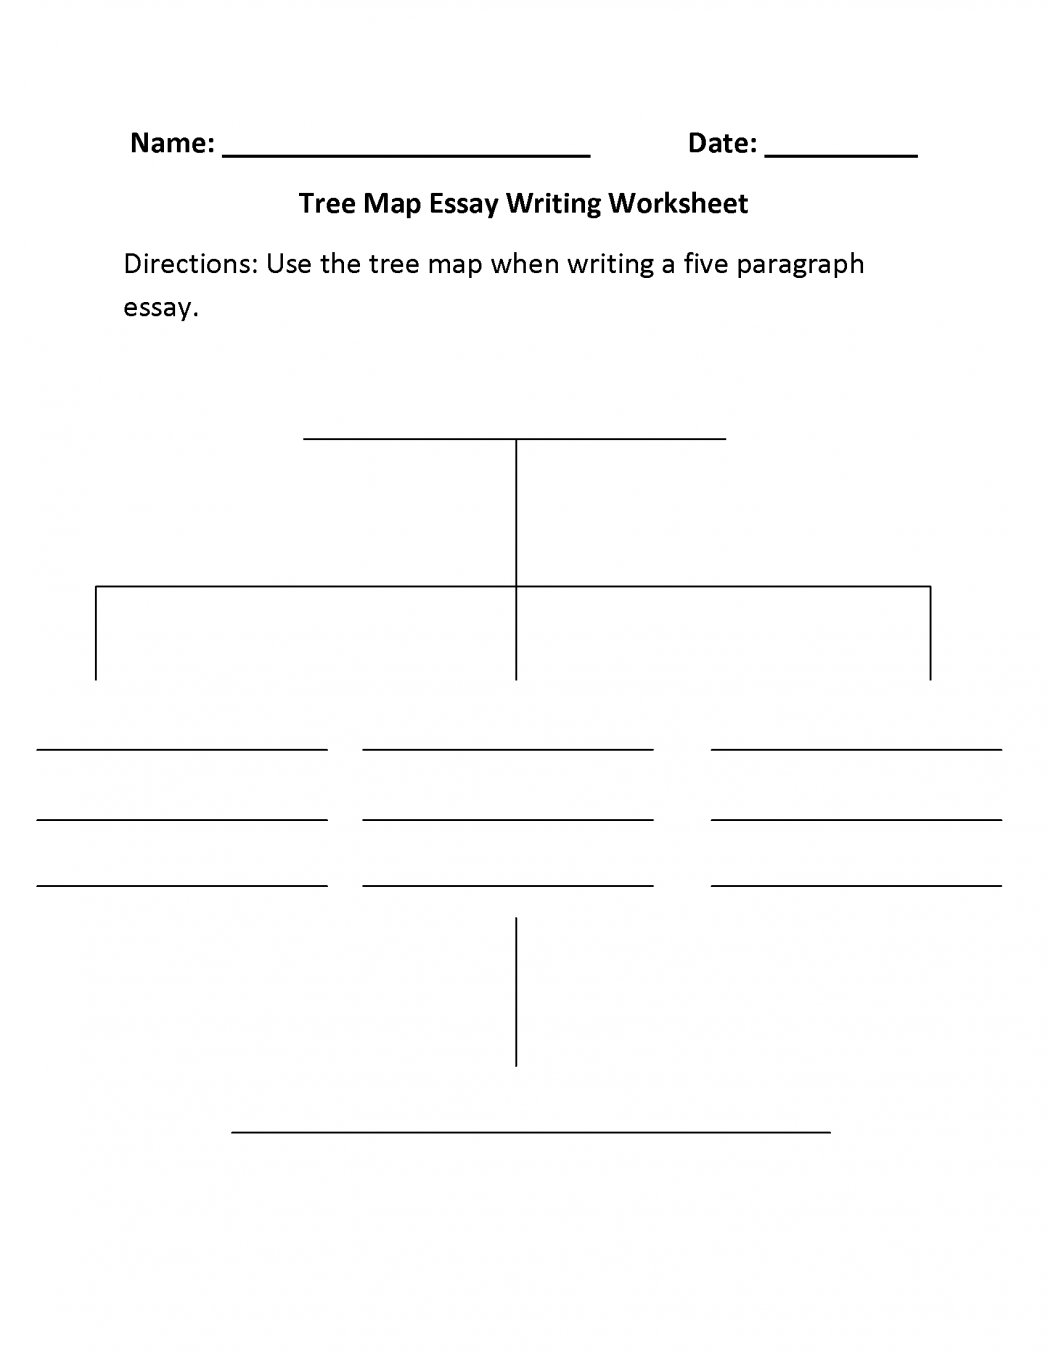 011 Essay Example Schizophrenia Essays On The Family And Free Writing Tools Tree Map Work Shocking Topics Conclusion Full